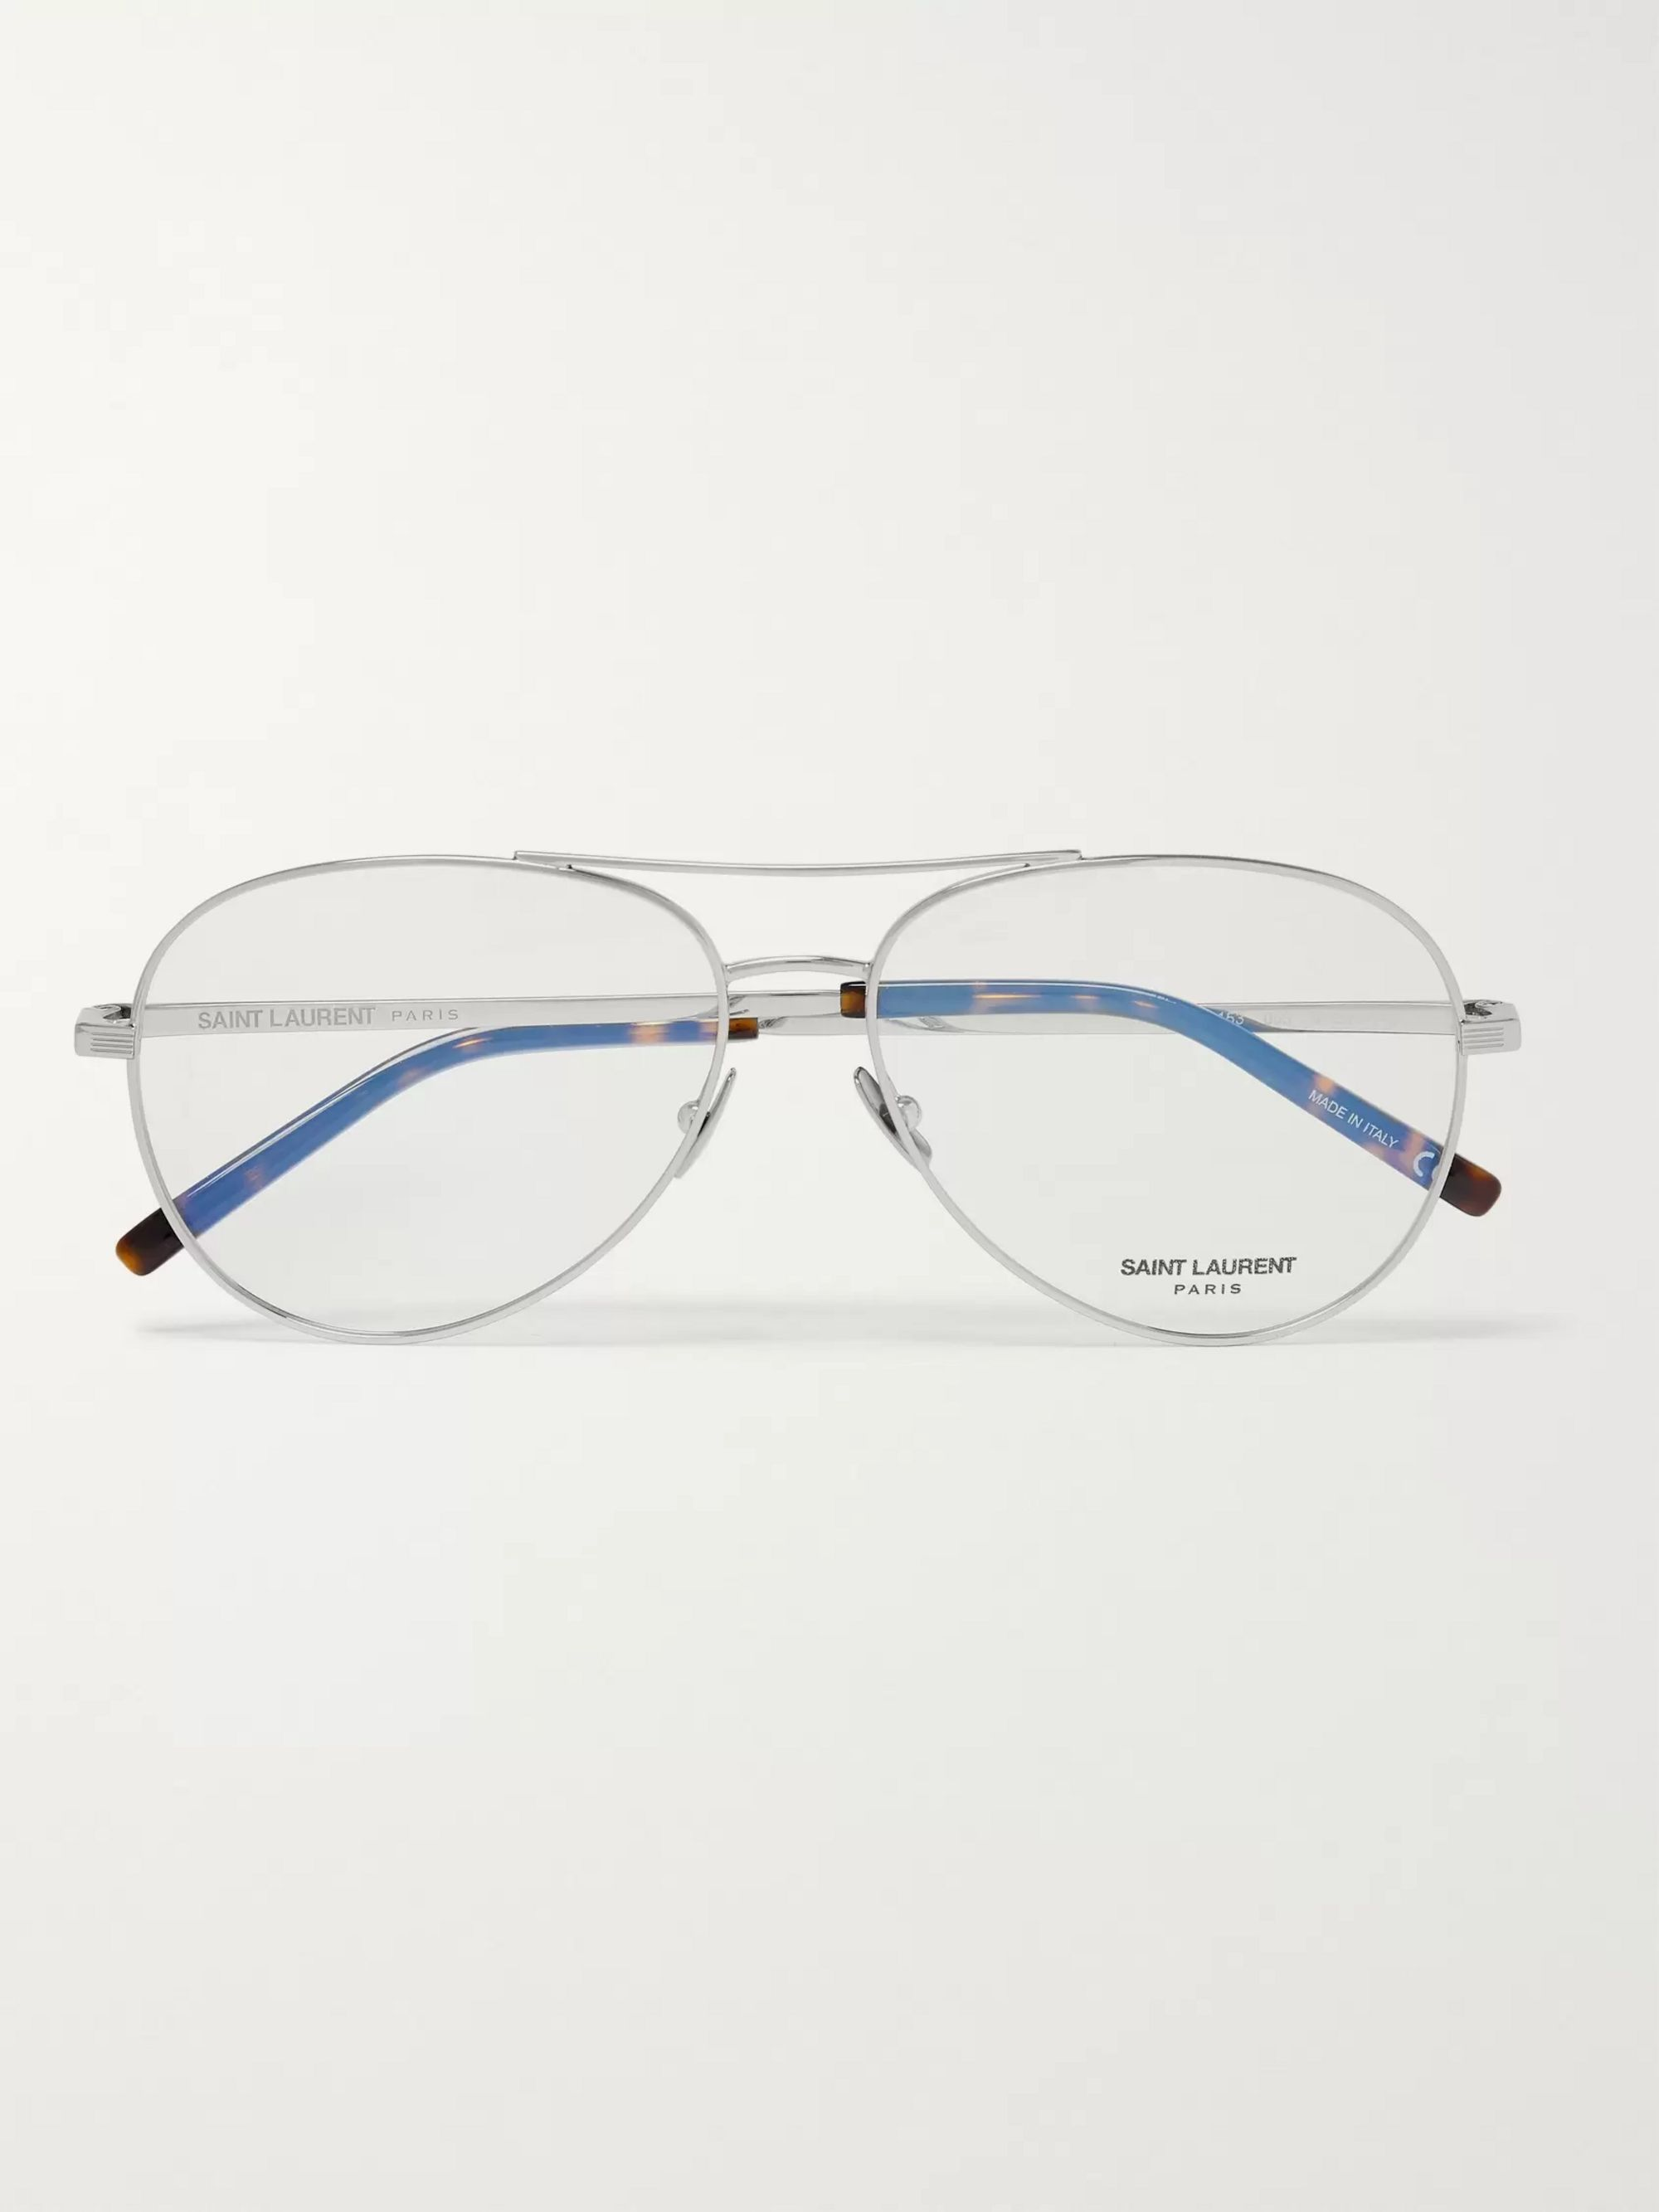 SAINT LAURENT Aviator-Style Silver-Tone Optical Glasses